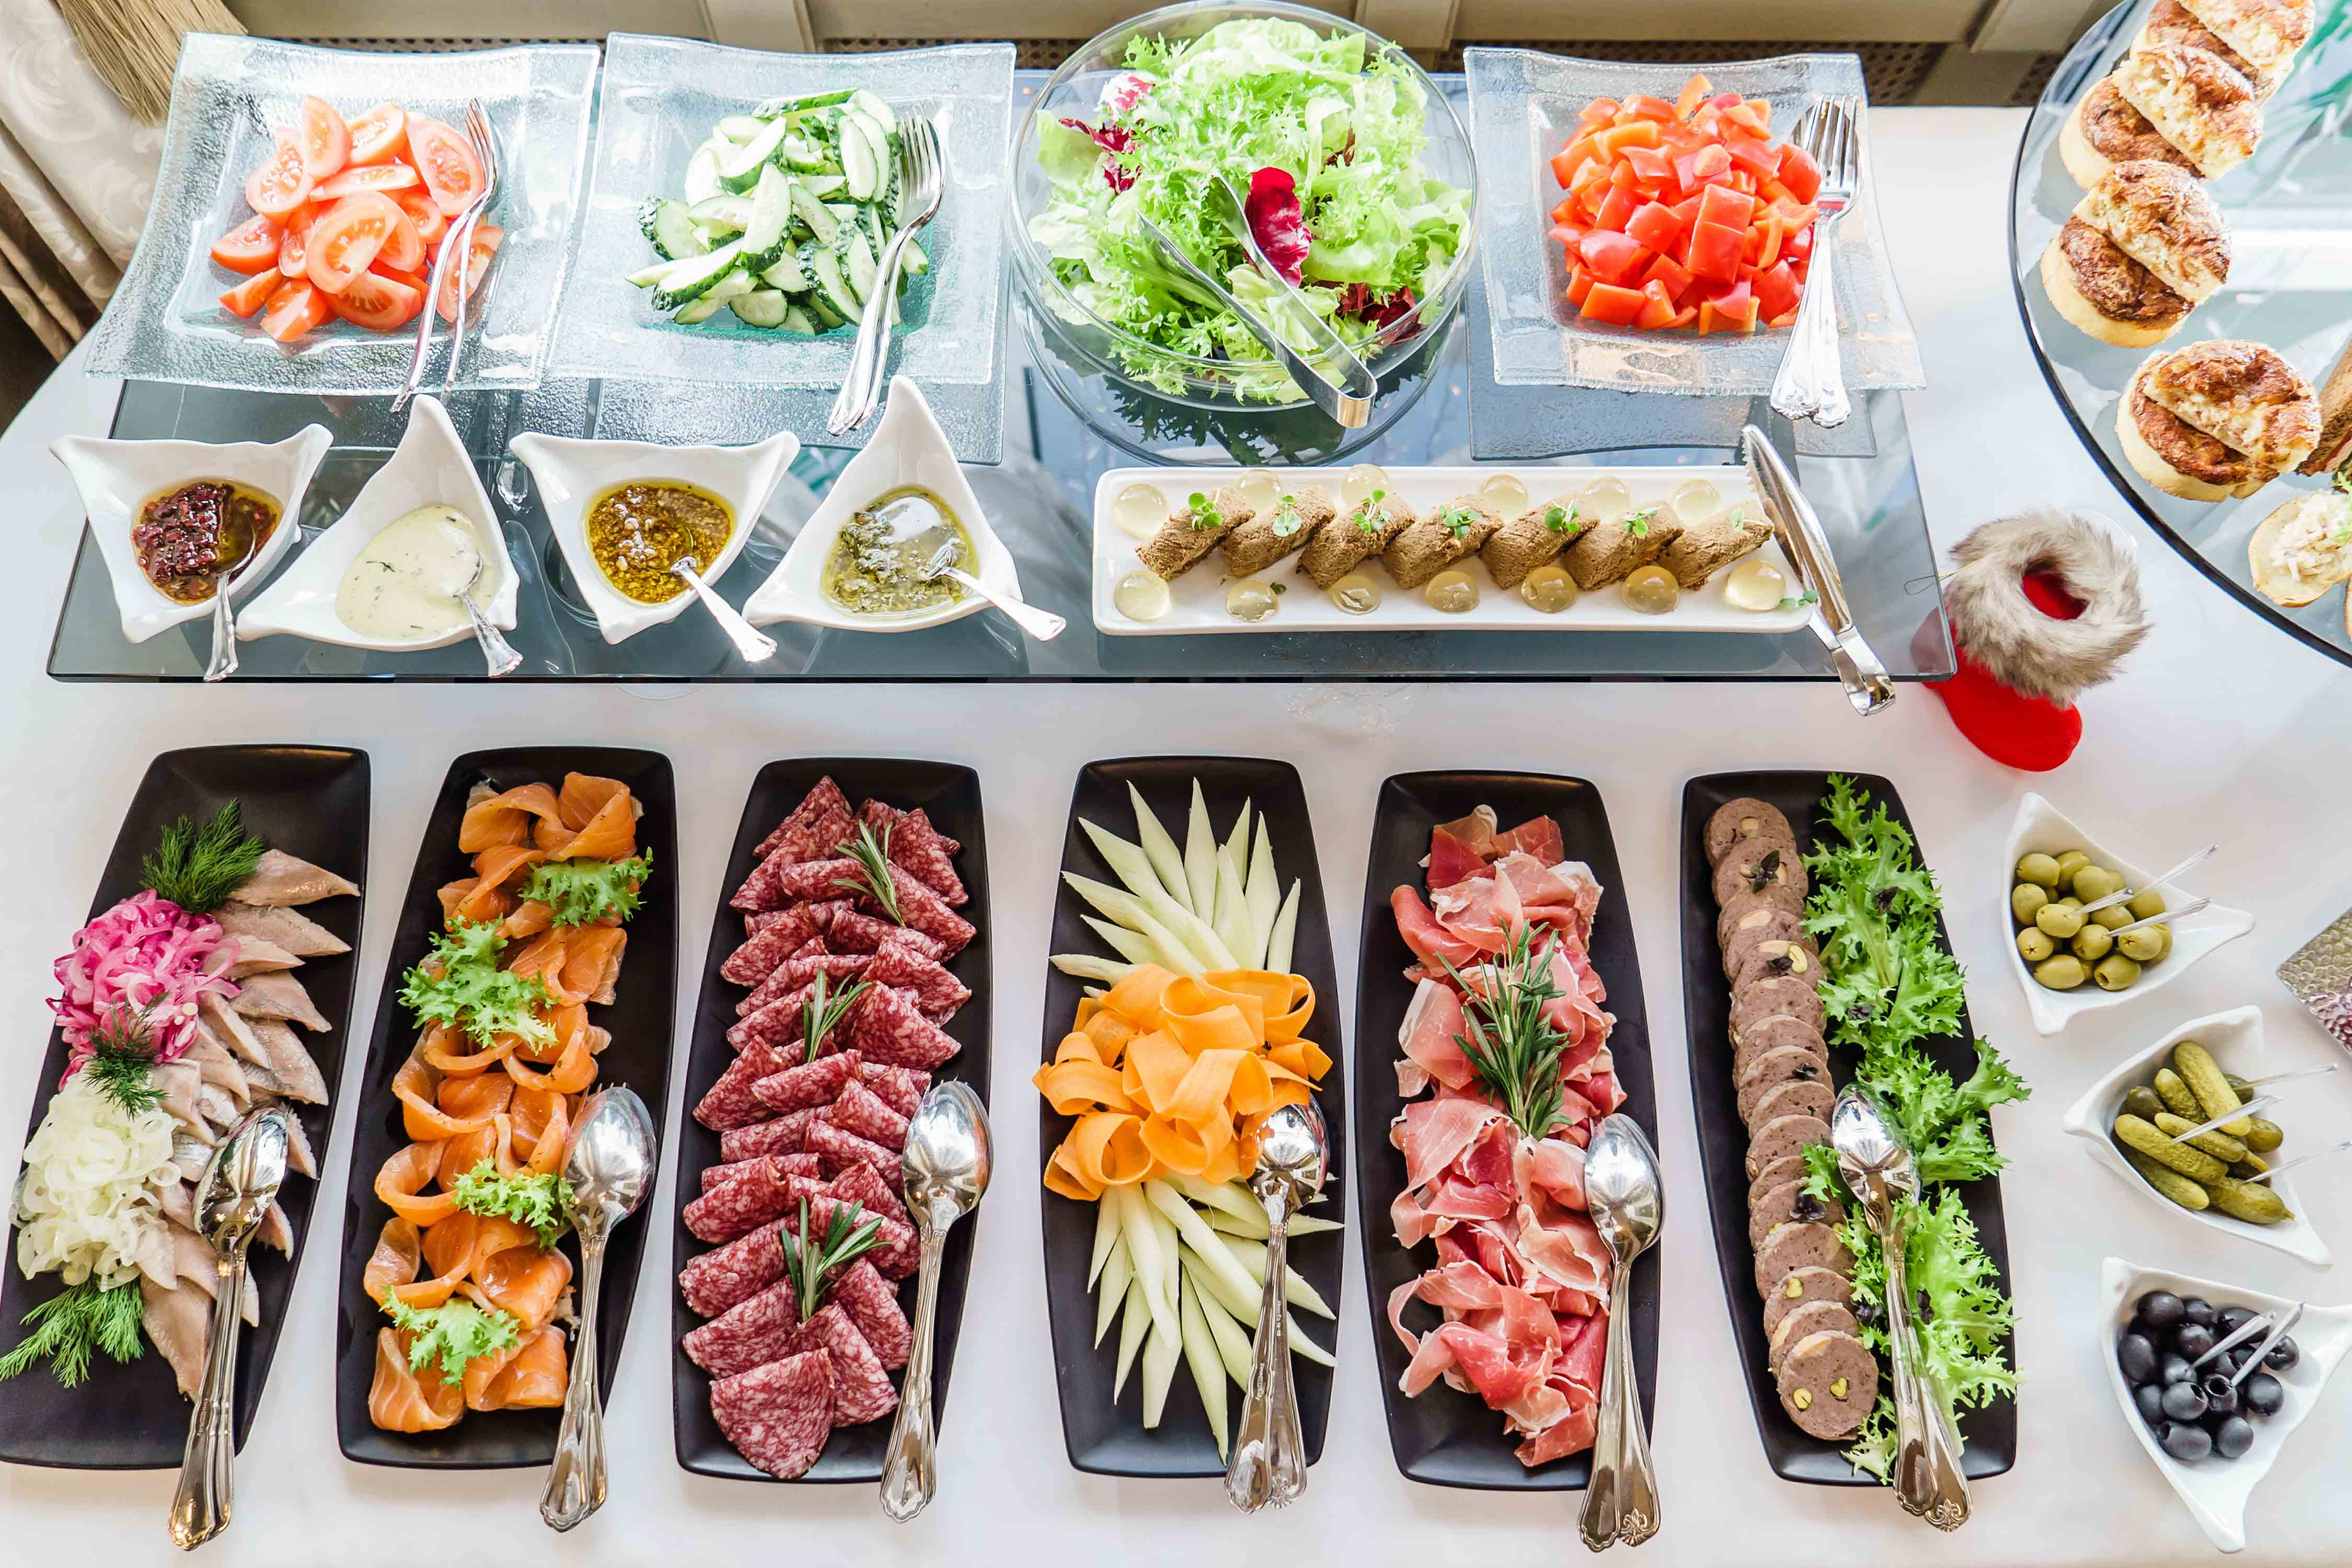 The best wedding caterer buffet on the Costa Blanca